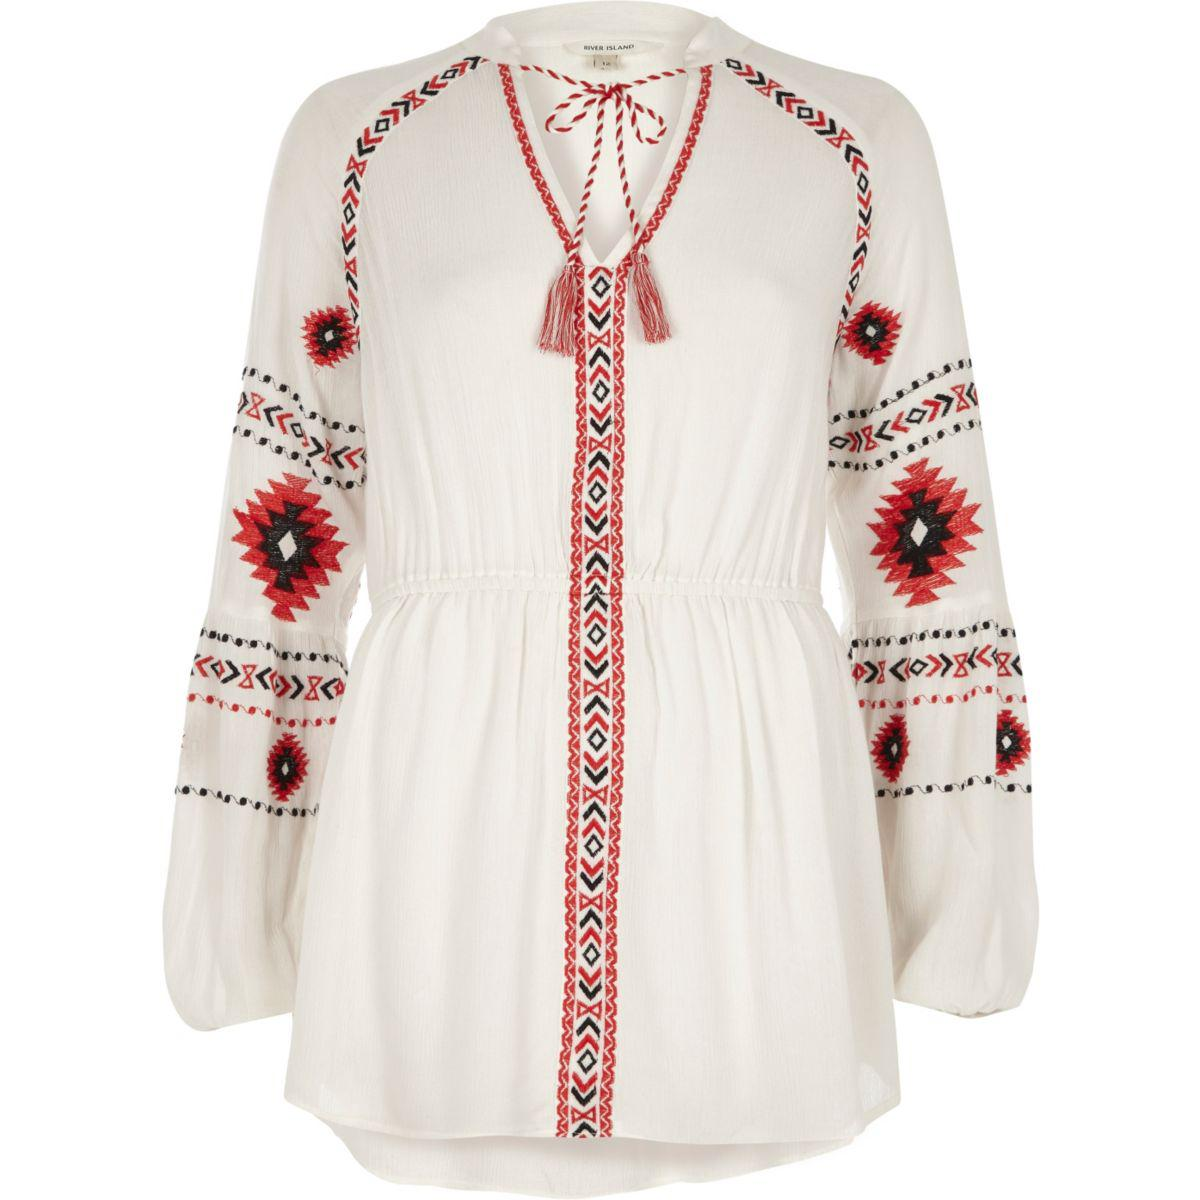 River Island White Embroidered Top